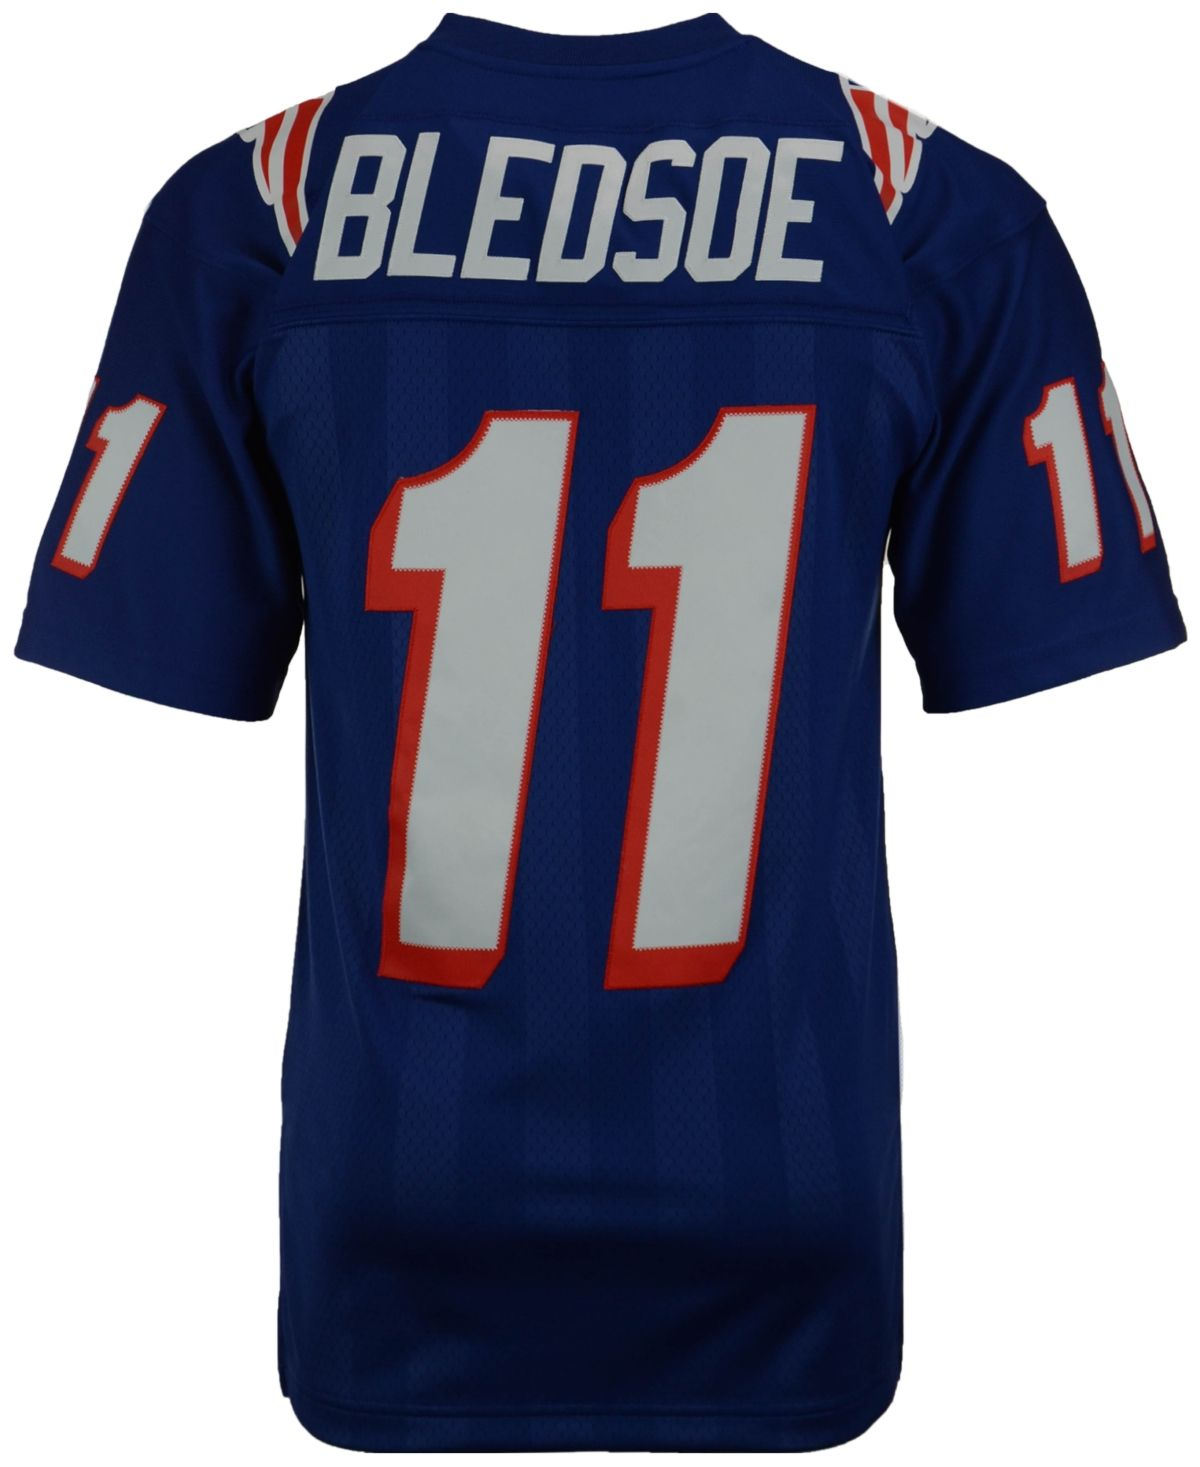 Mitchell Ness Men S Drew Bledsoe New England Patriots Replica Throwback Jersey Reviews Sports Fan Shop By Lids Men Macy S New England Patriots Drew Bledsoe Sports Fan Shop